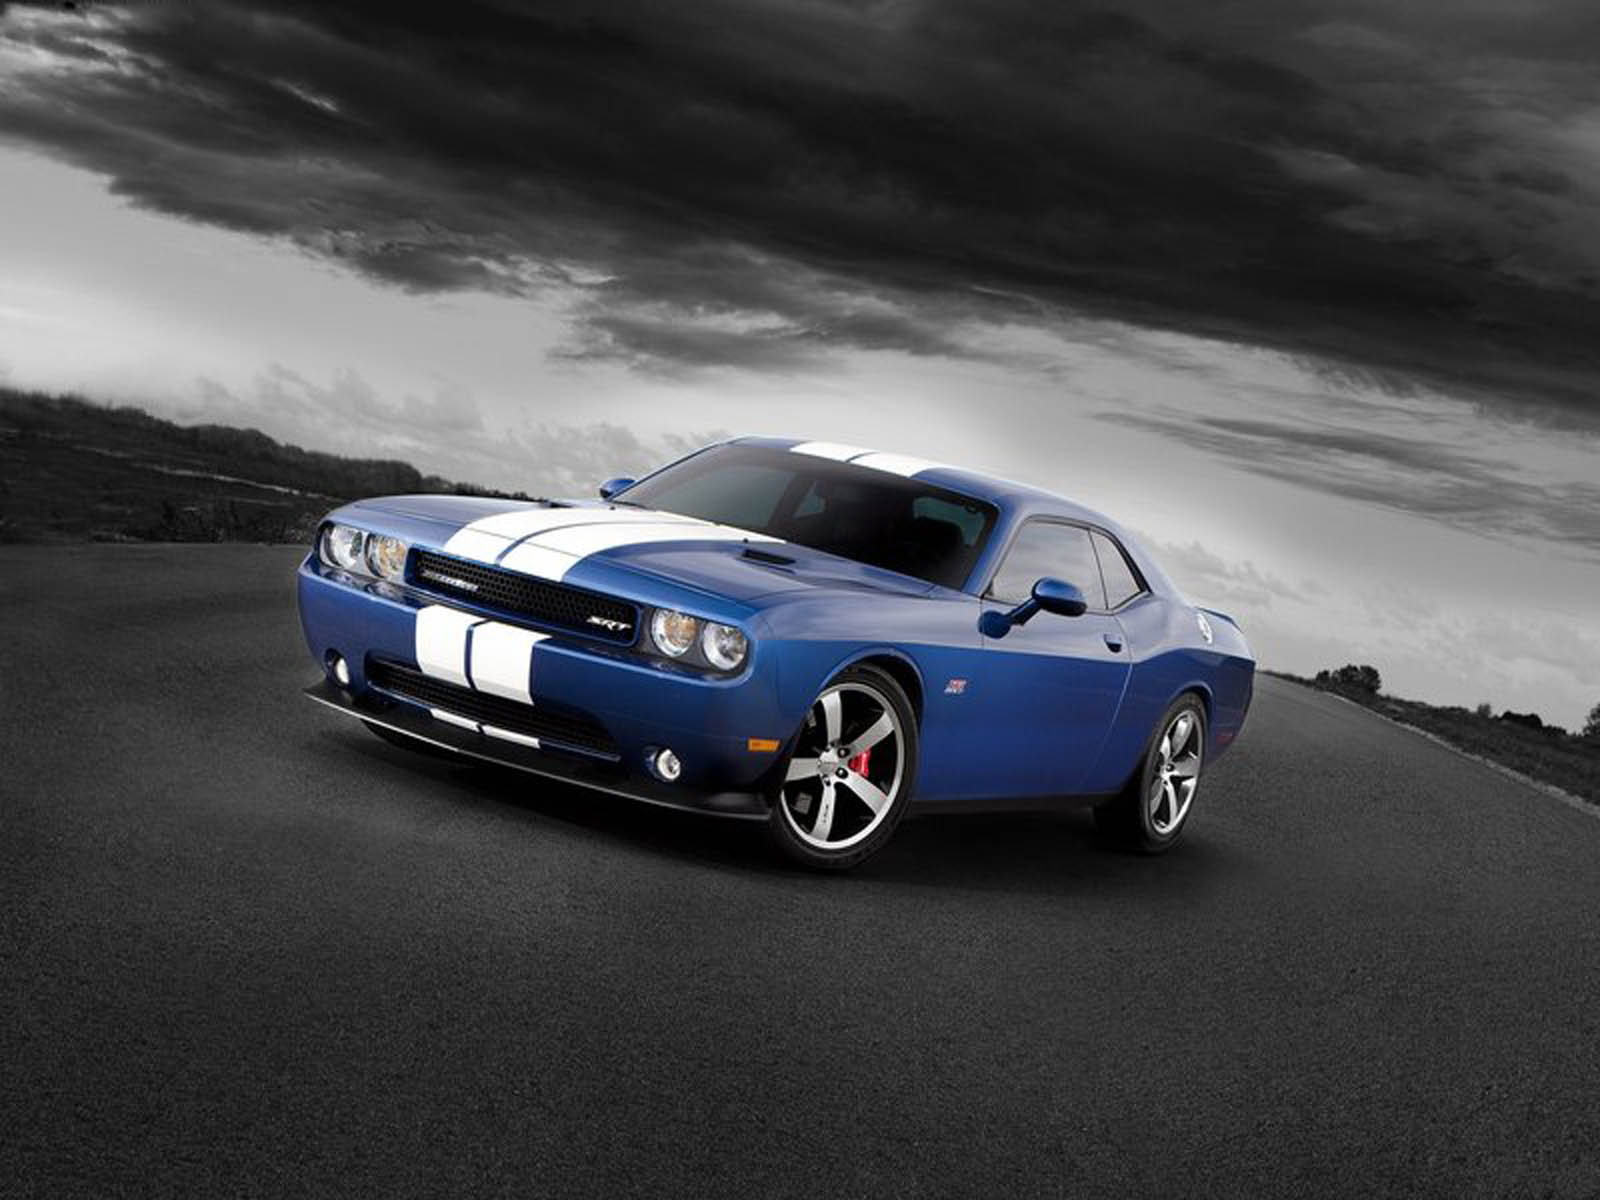 challenger srt8 car wallpapers images paos pictures and backgrounds 1600x1200